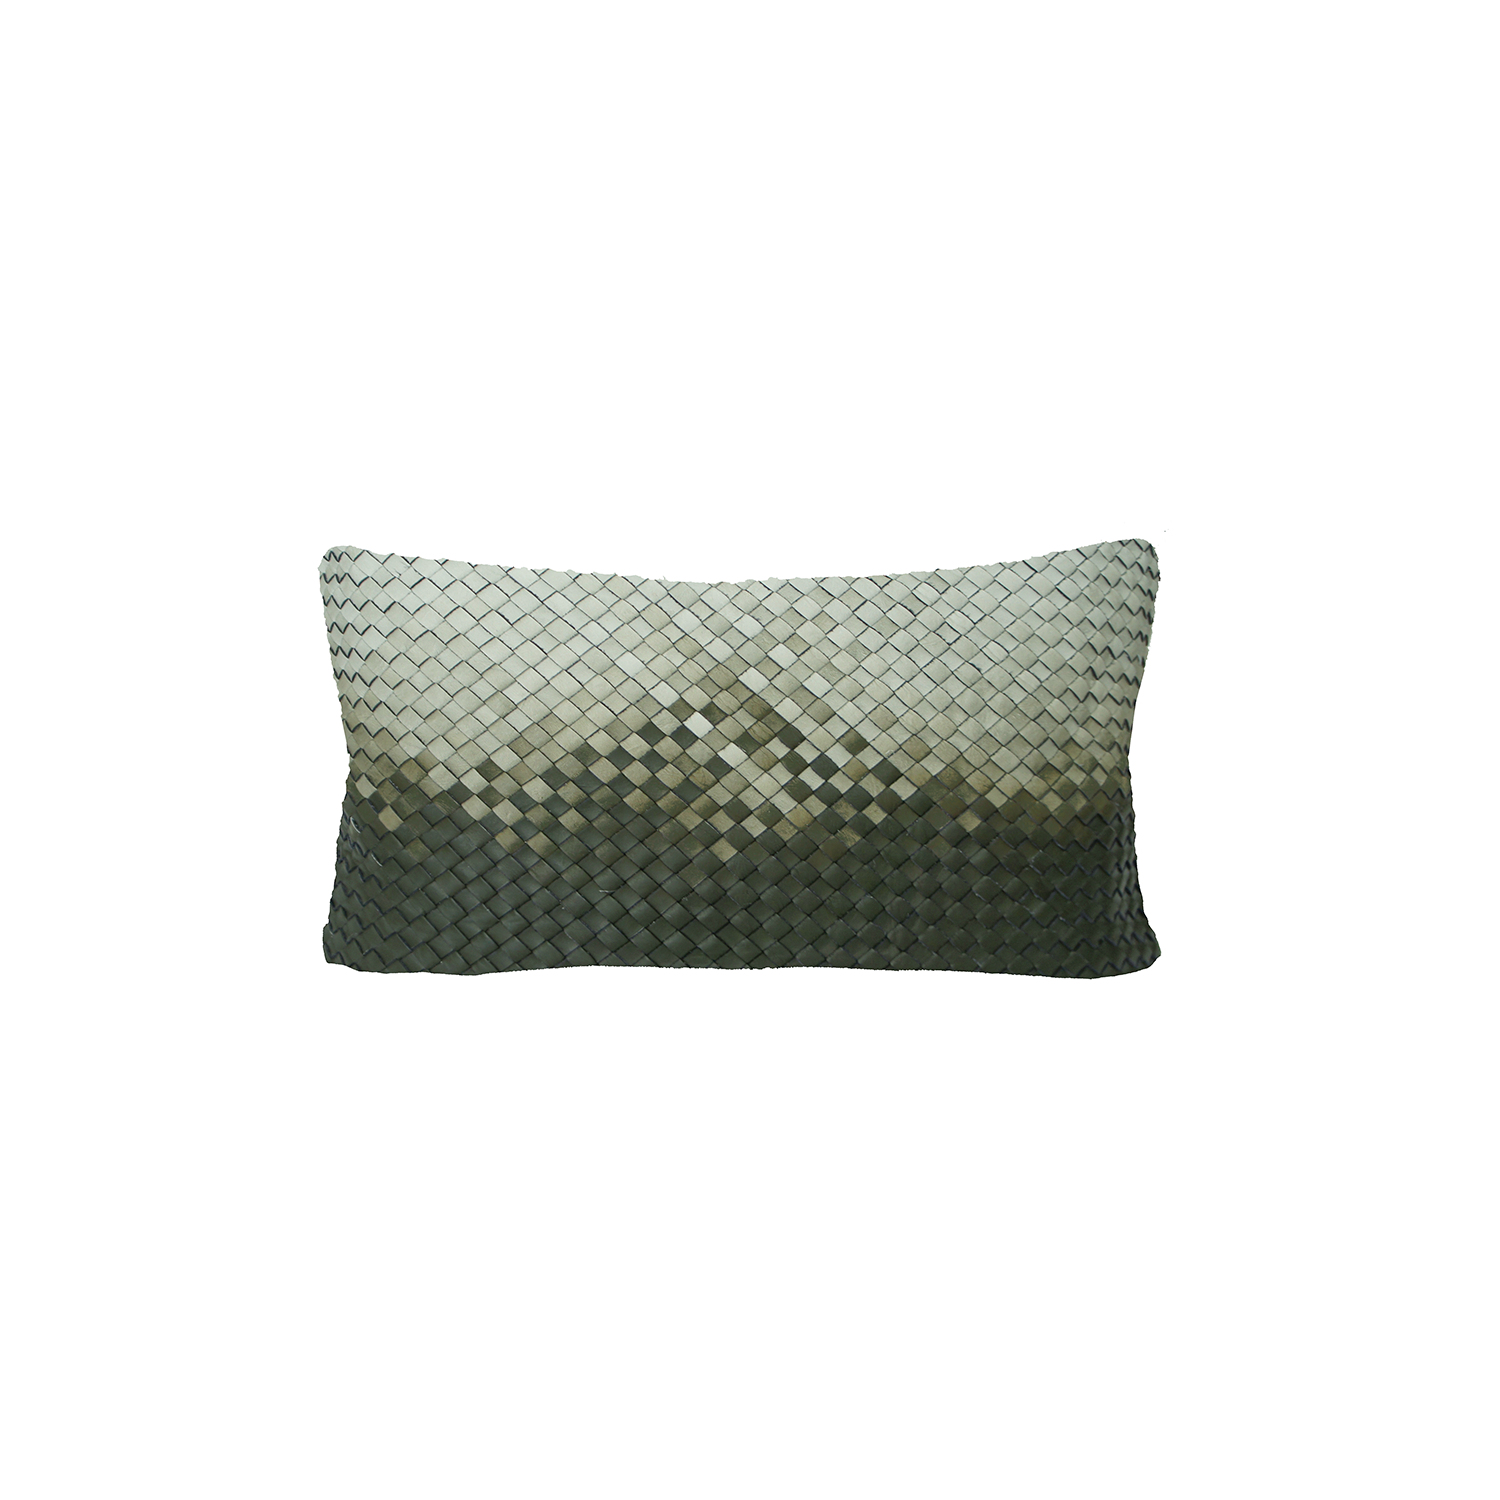 Tresse Degrade Diagonal Woven Leather Cushion Small - The Tresse Degrade Diagonal Woven Leather Cushion is designed to complement an ambient with a natural and sophisticated feeling. This cushion style is available in pleated leather or pleated suede leather. Elisa Atheniense woven handmade leather cushions are specially manufactured in Brazil using an exclusive treated leather that brings the soft feel touch to every single piece.   The front panel is handwoven in leather and the back panel is 100% Pes, made in Brazil.  The inner cushion is available in Hollow Fibre and European Duck Feathers, made in the UK.  Please enquire for more information and see colour chart for reference.   | Matter of Stuff